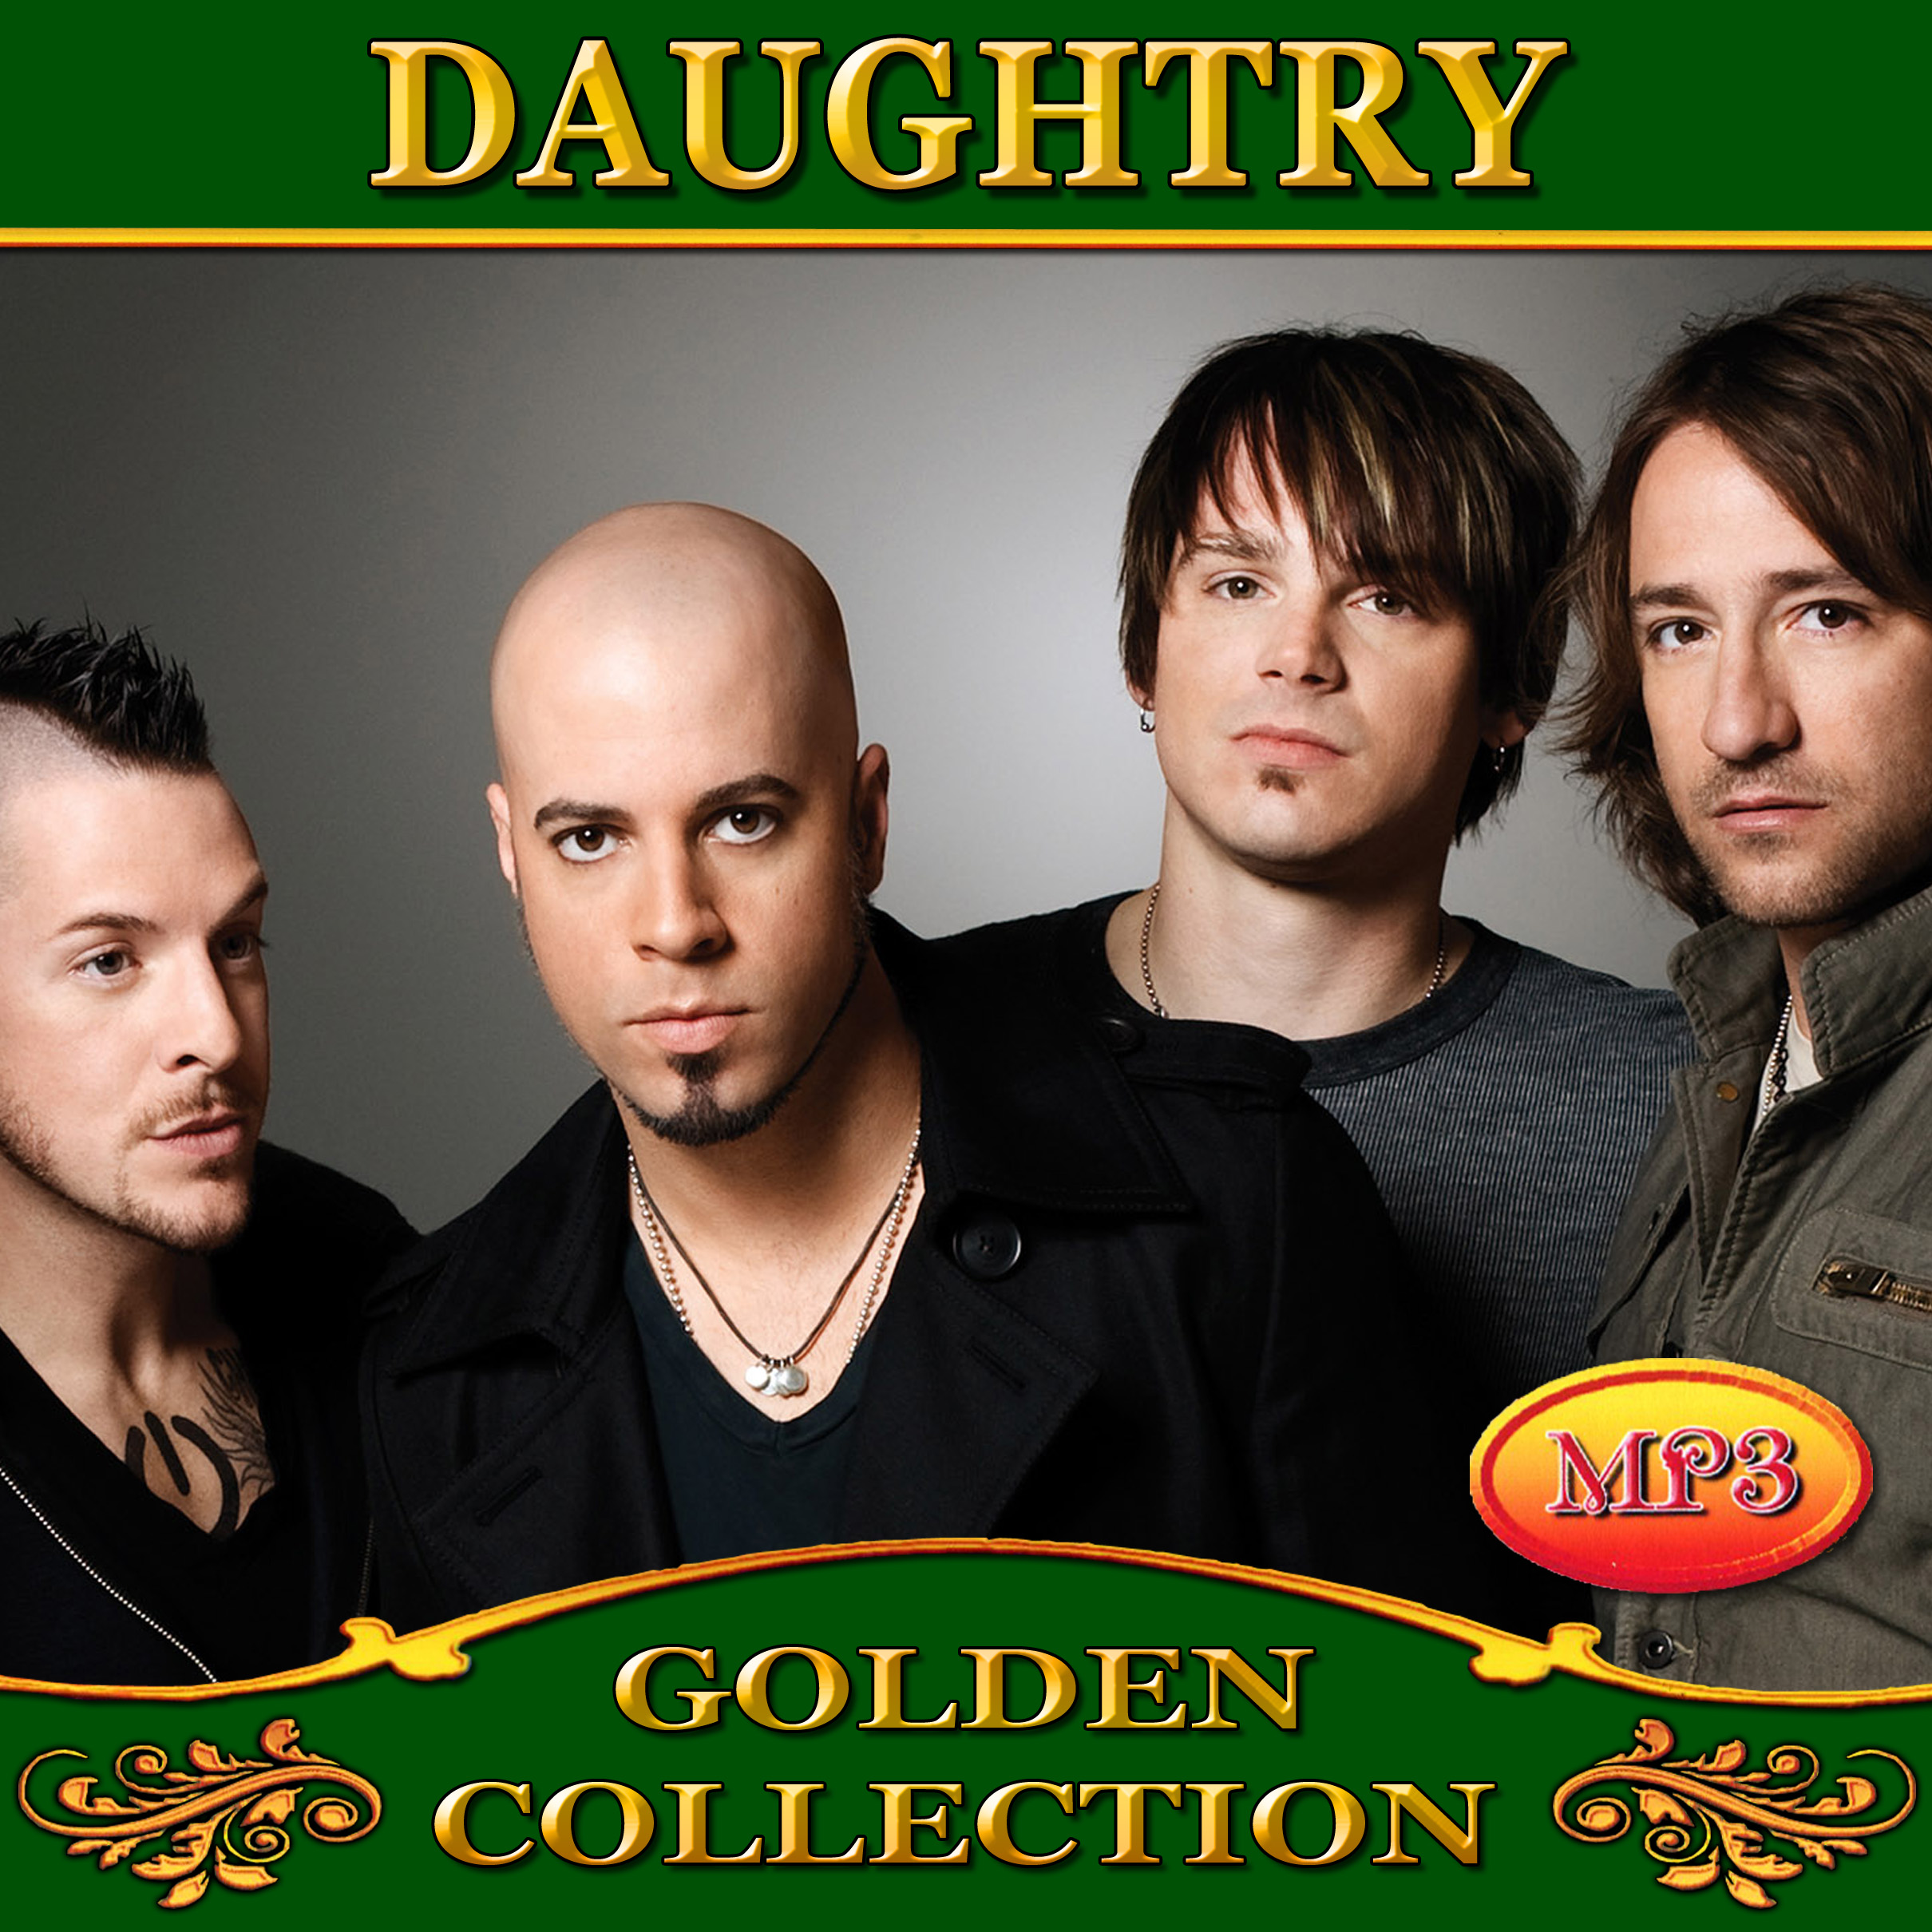 Daughtry [mp3]